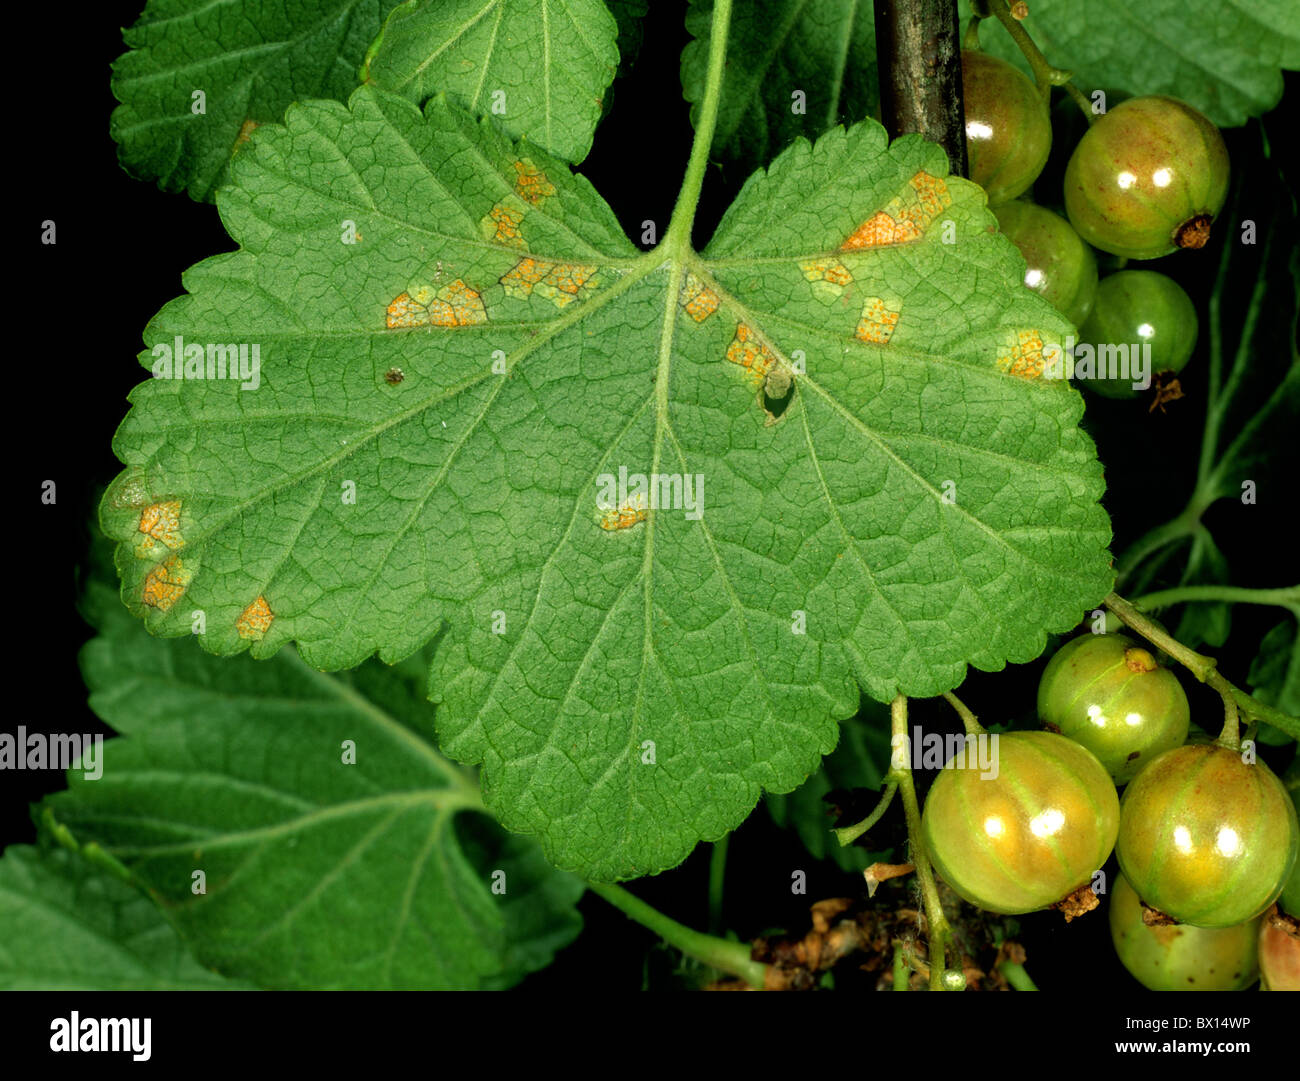 Early sympyoms gooseberry cluster cup (Puccinia caracina) on currant leaf underside - Stock Image